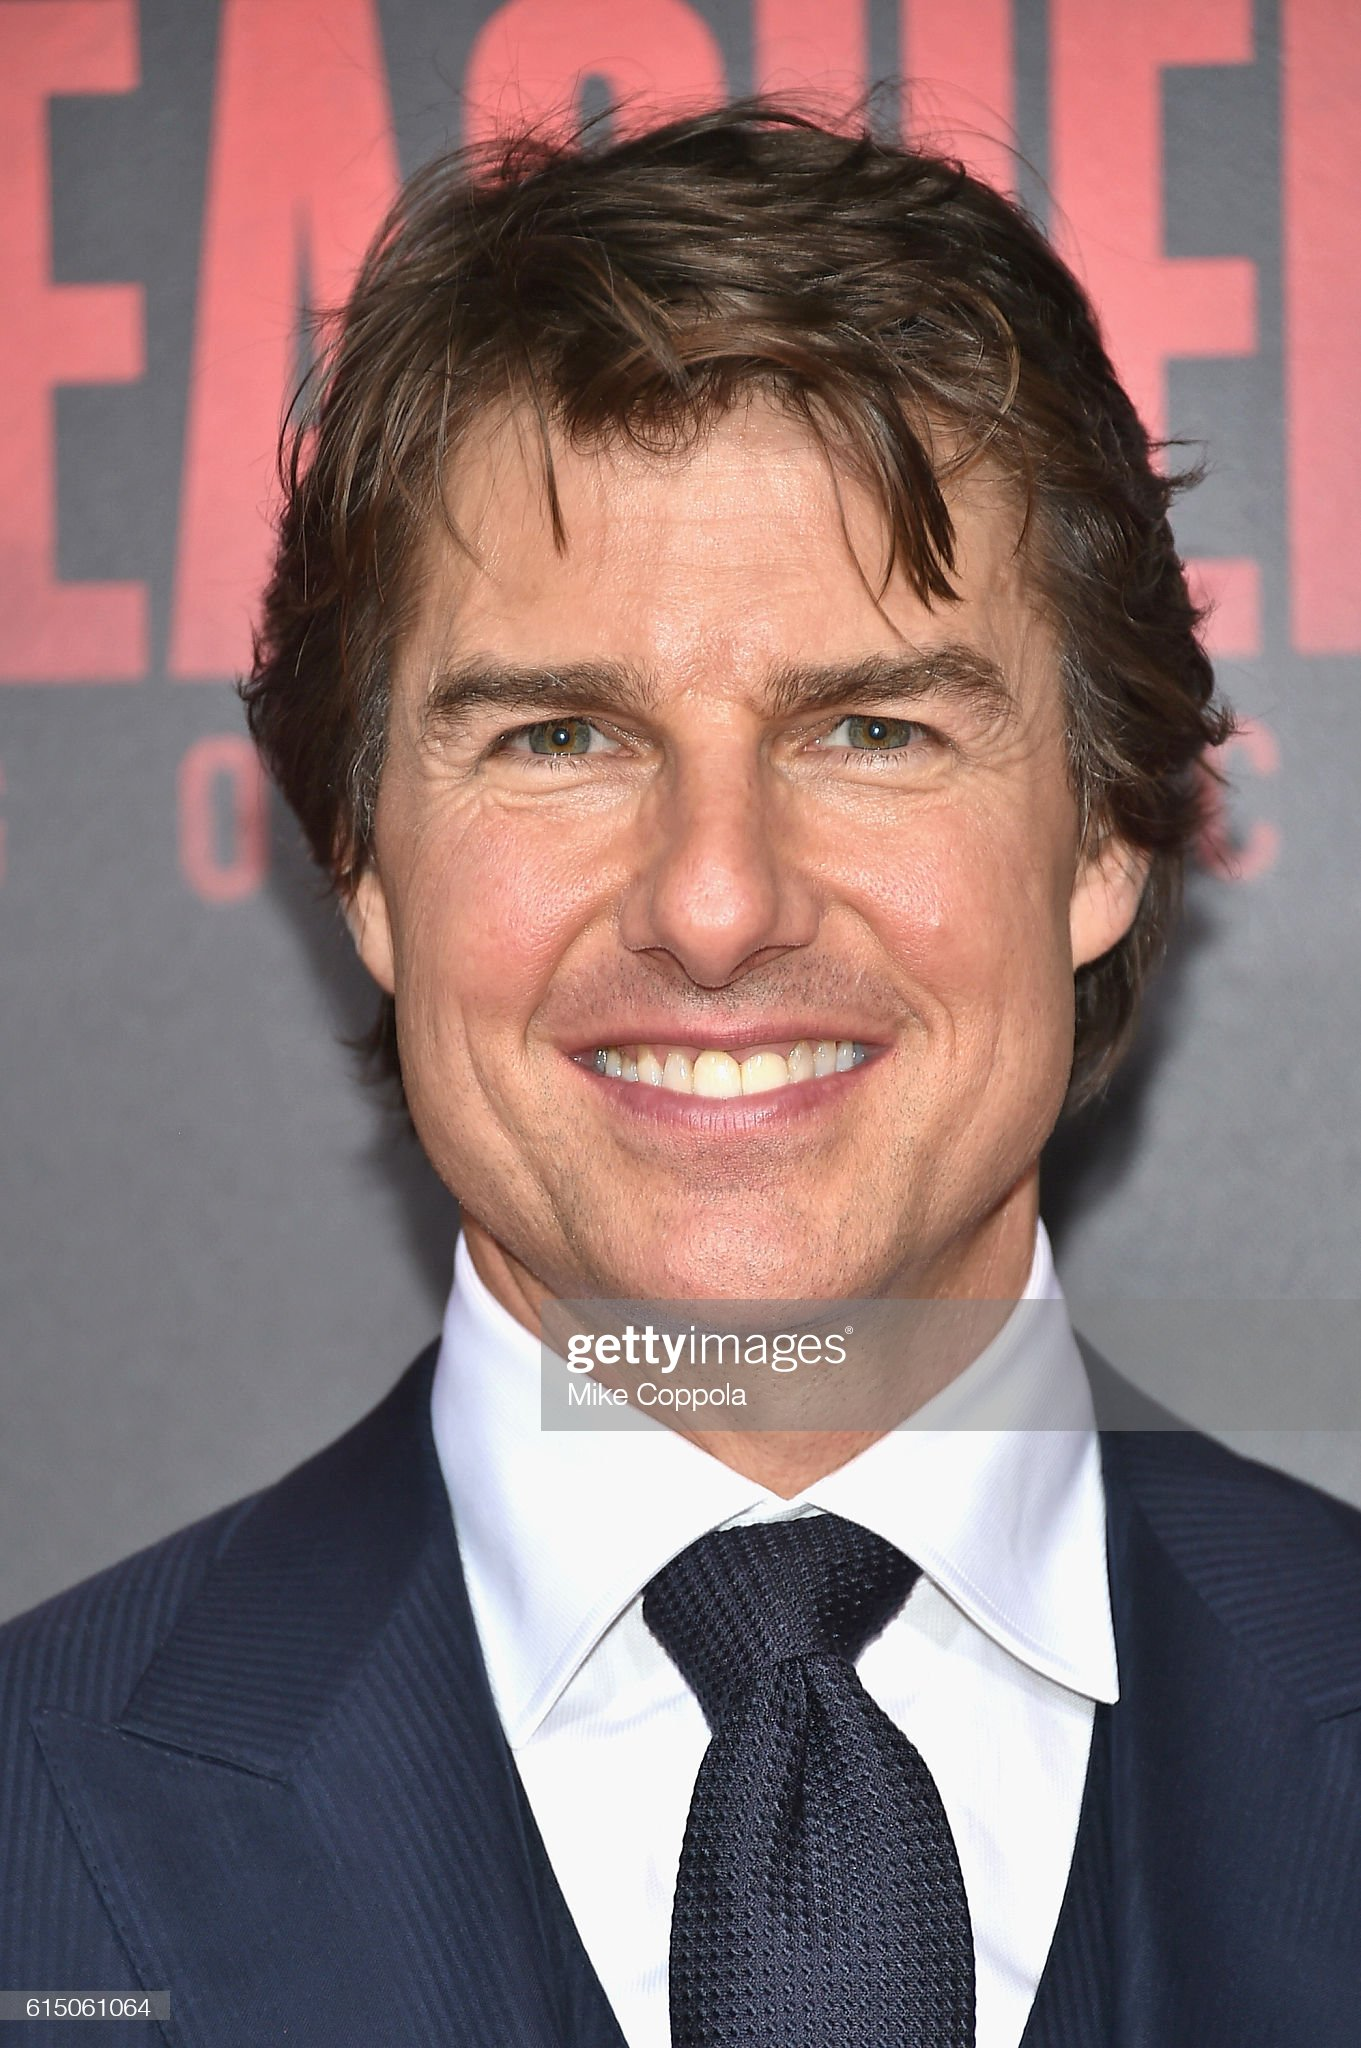 Tom Cruise (Galería de fotos) Tom-cruise-attends-the-jack-reacher-never-go-back-fan-screening-at-picture-id615061064?s=2048x2048